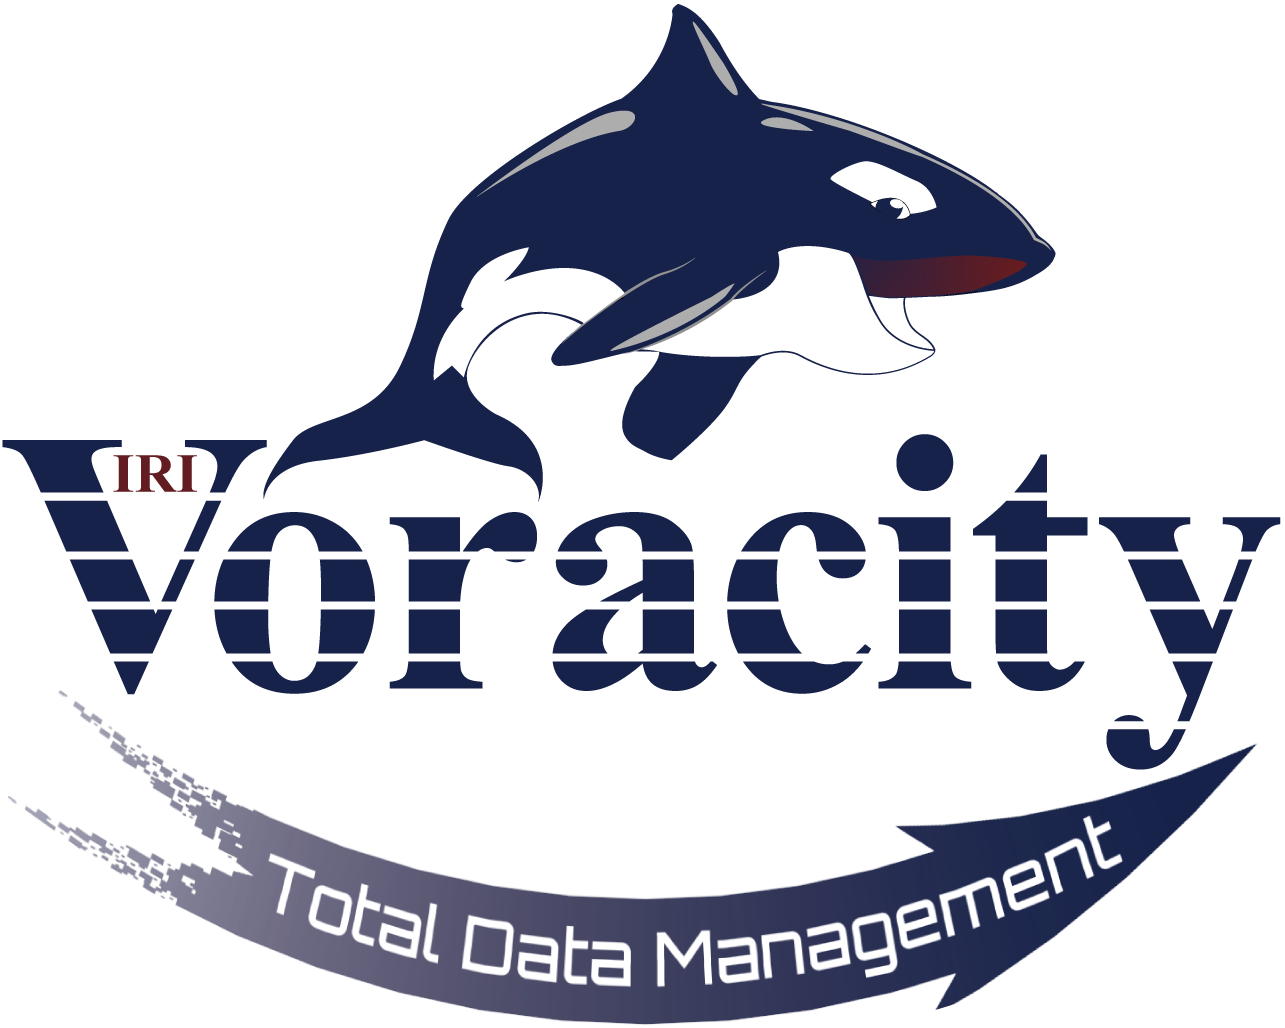 Voracity: Total Data Management You Can Afford from IRI, The CoSort Company